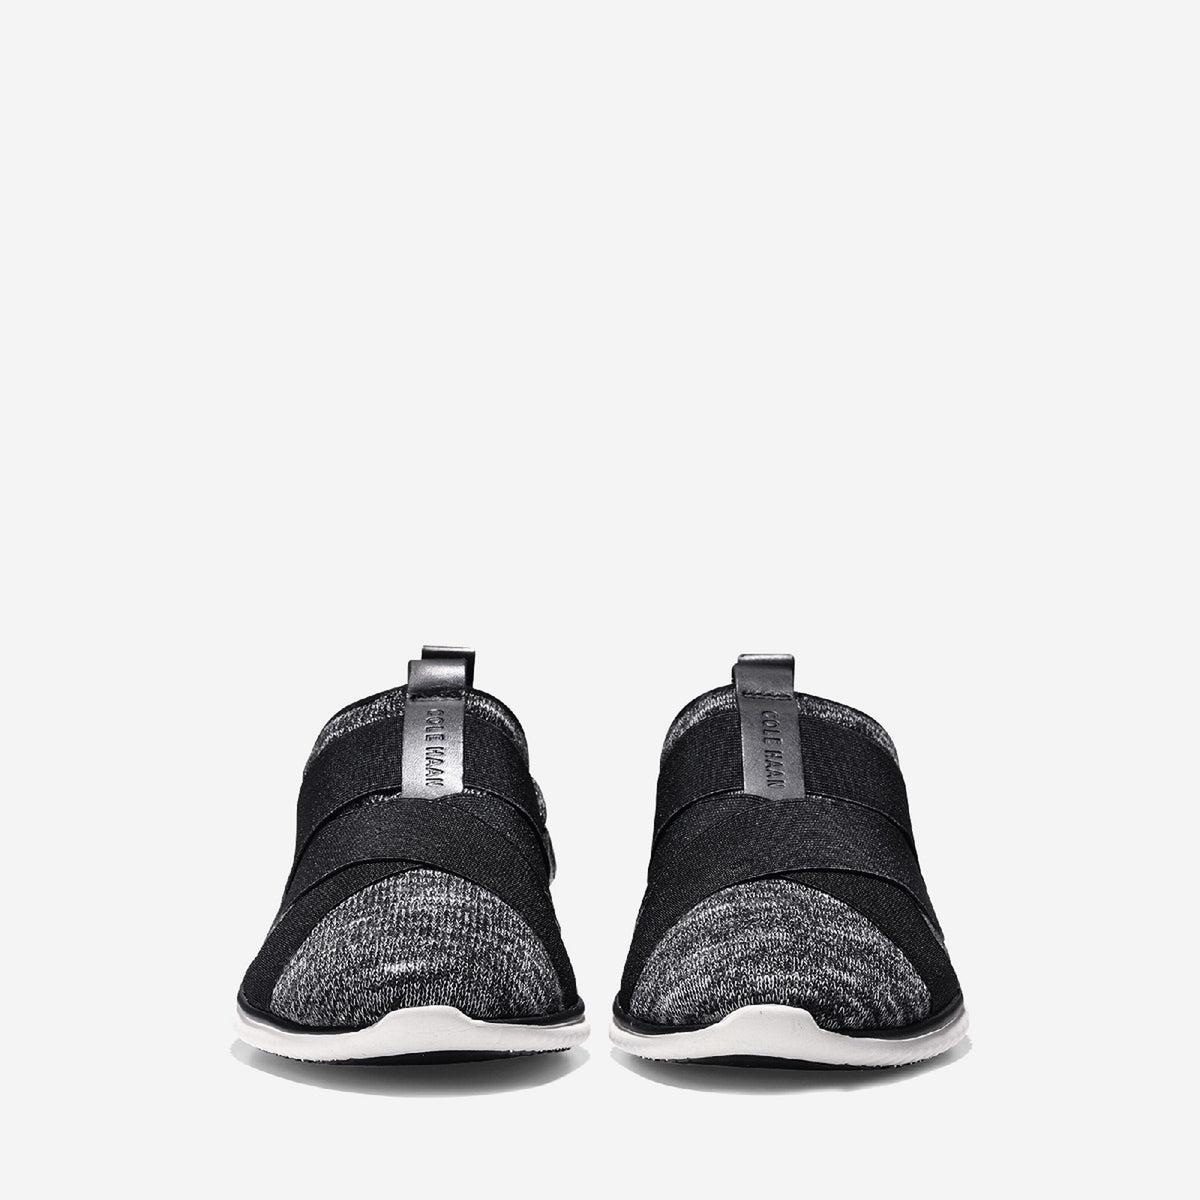 Women's Studiogrand Sport Knit Slip On Trainer Black/Ivory